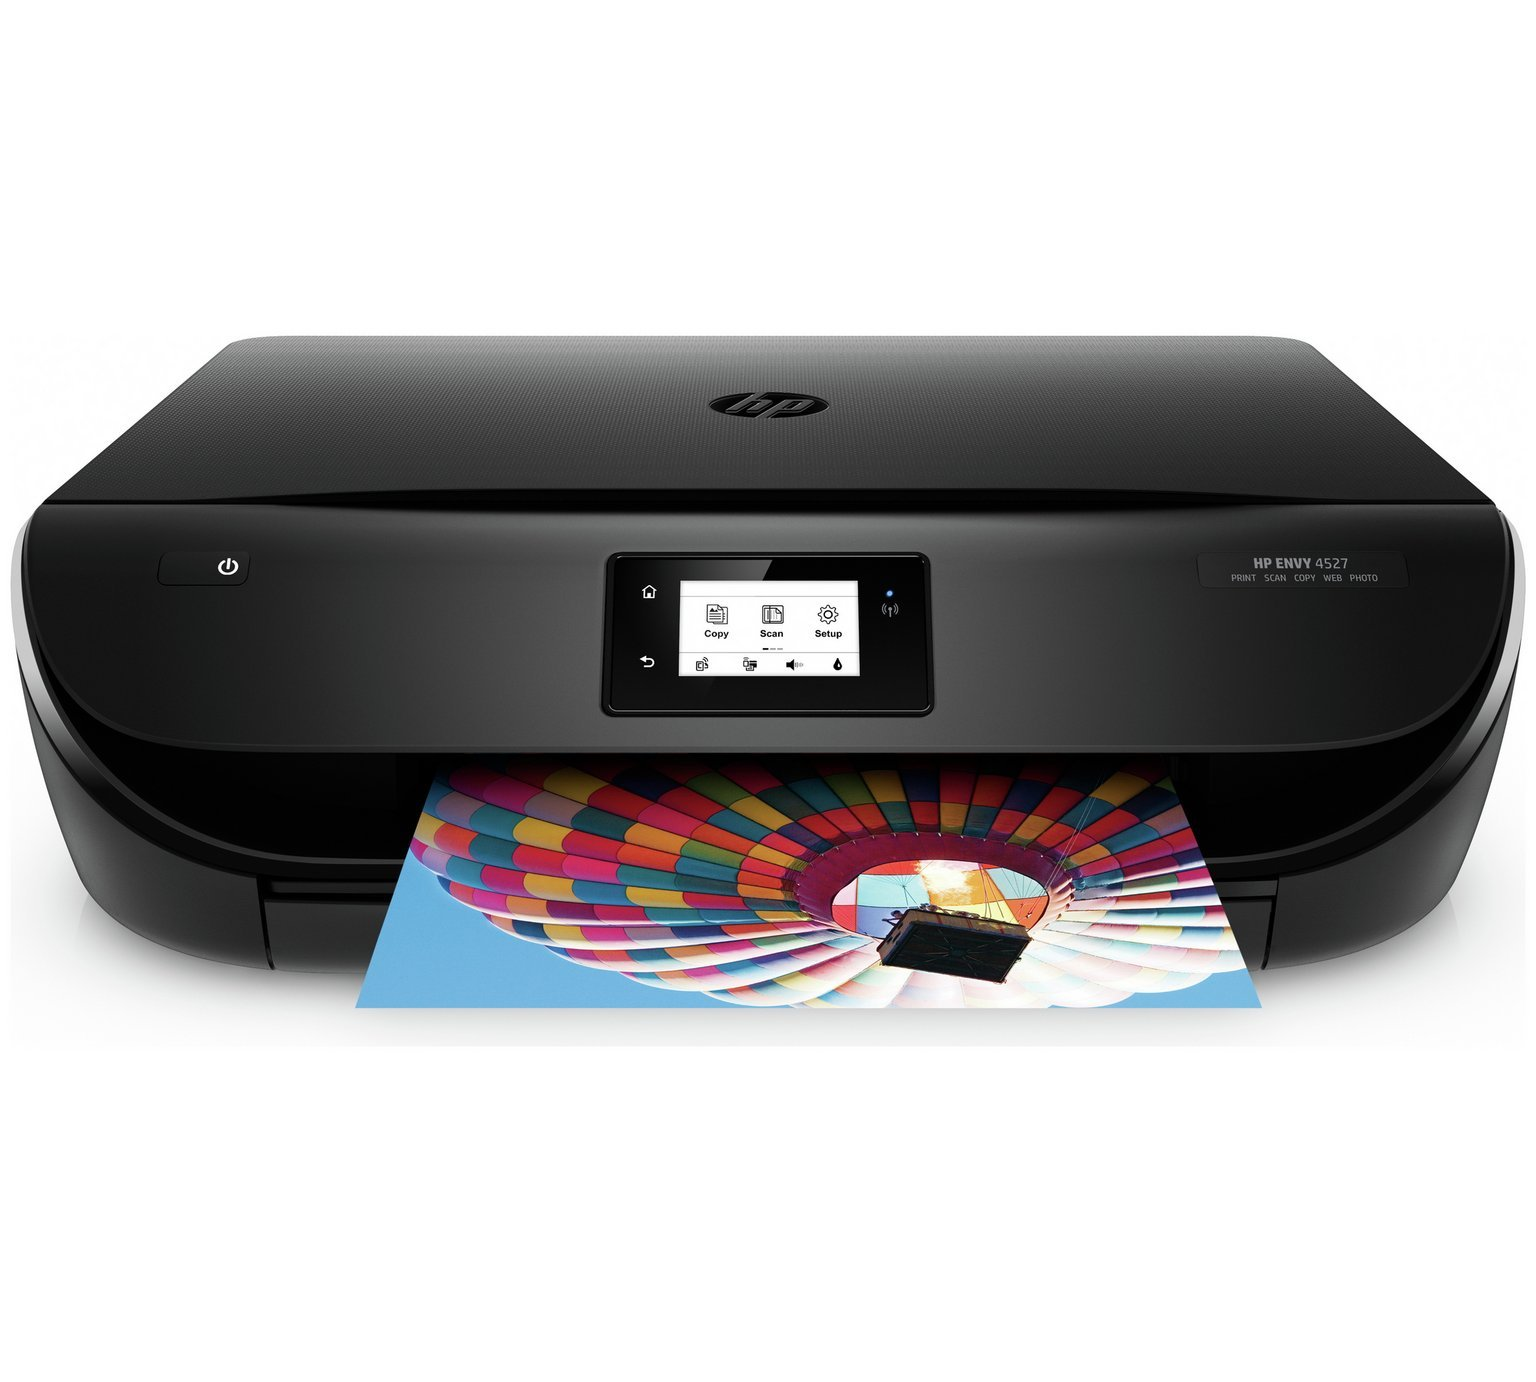 HP Envy 4527 All-in-One Wi-Fi Printer - Instant Ink Ready